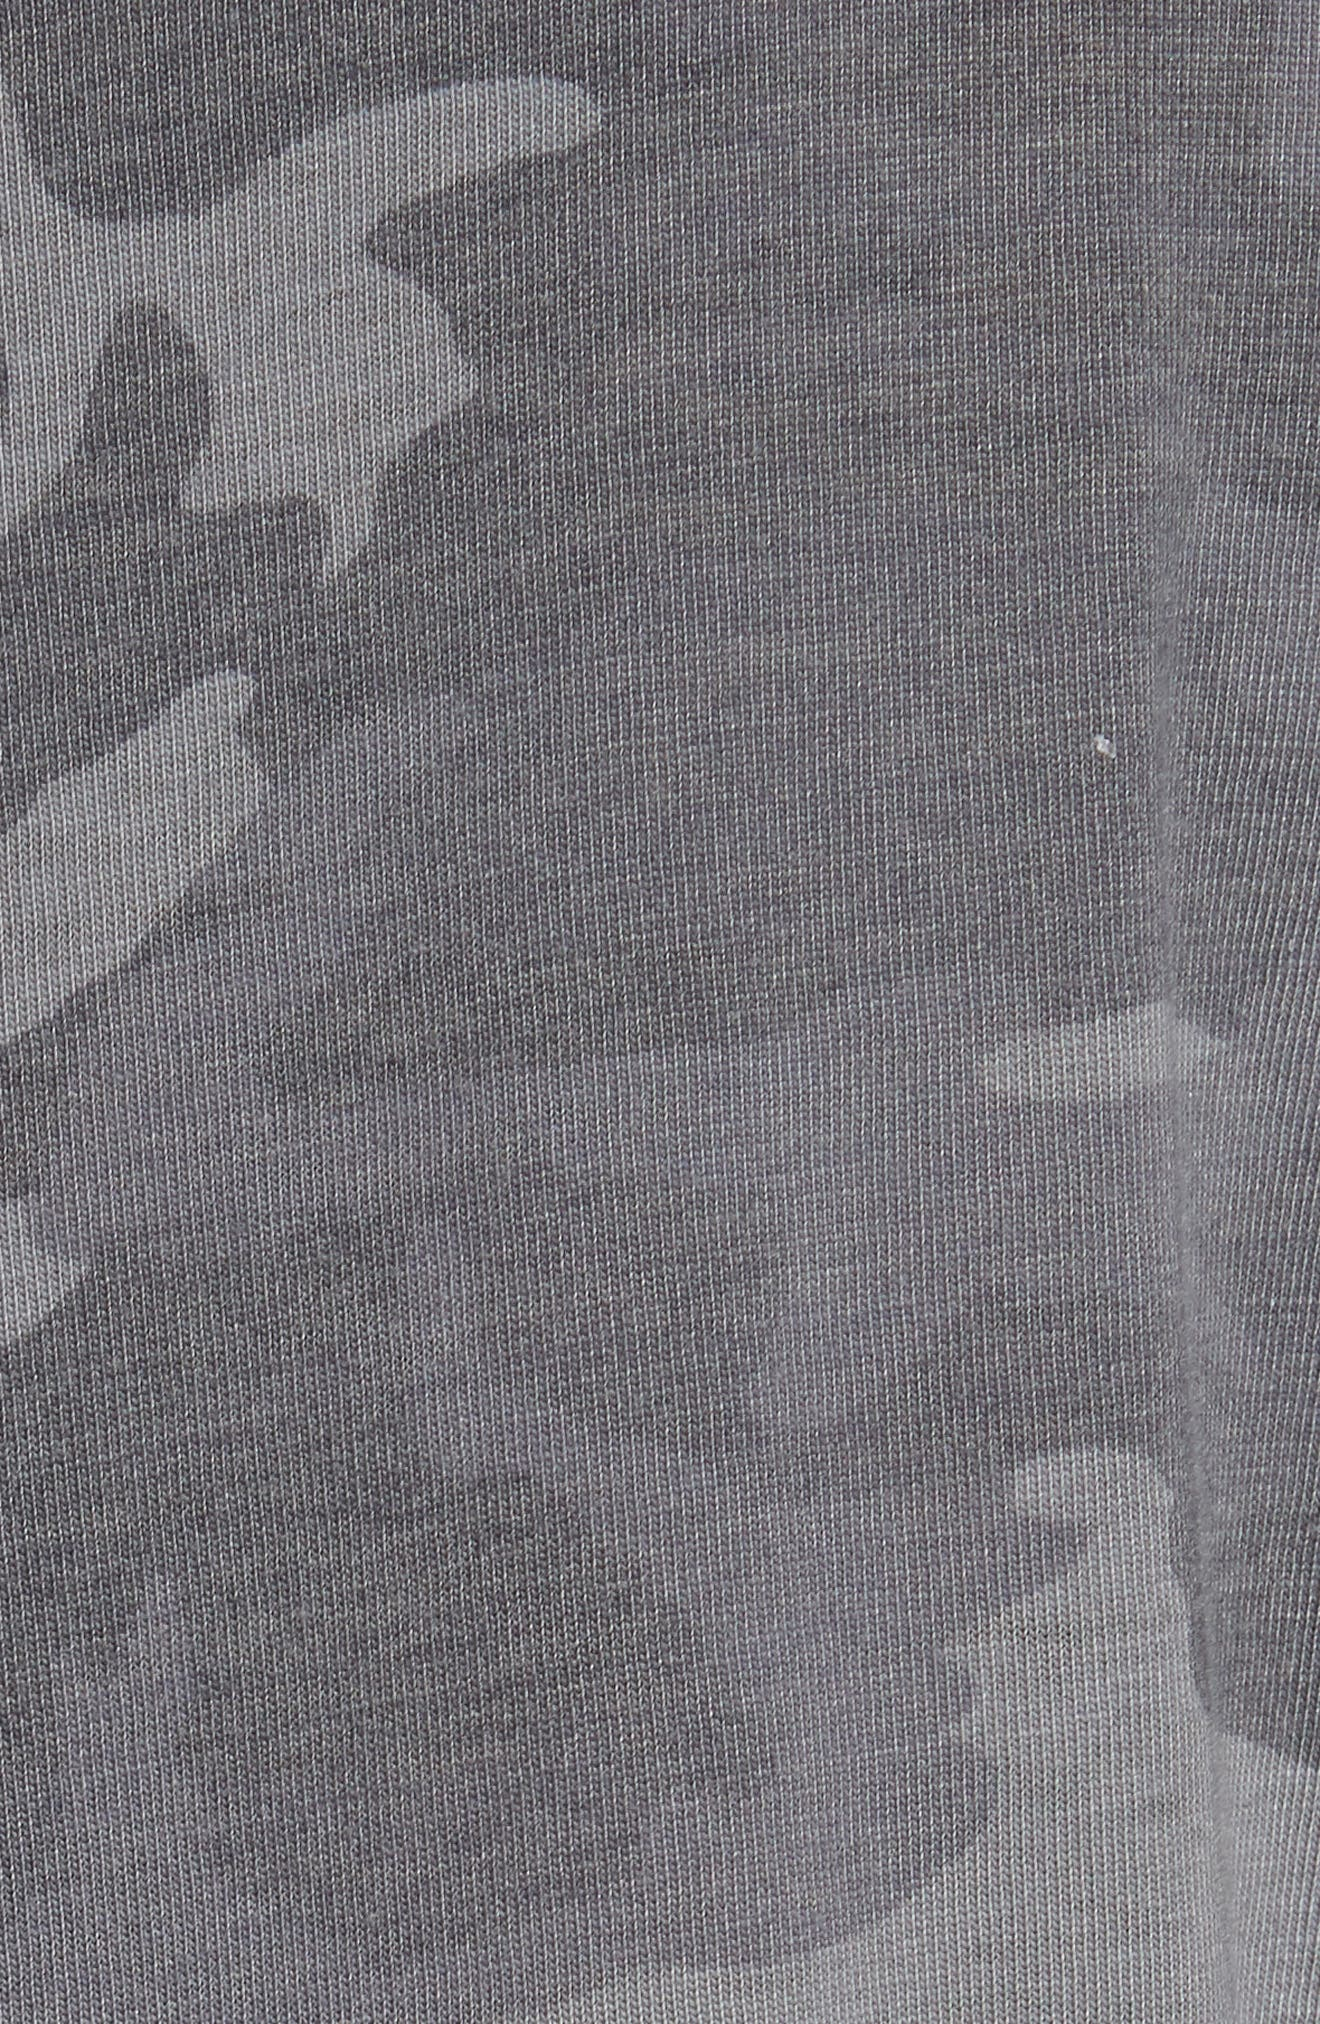 Army Tee,                             Alternate thumbnail 5, color,                             DARK GREY